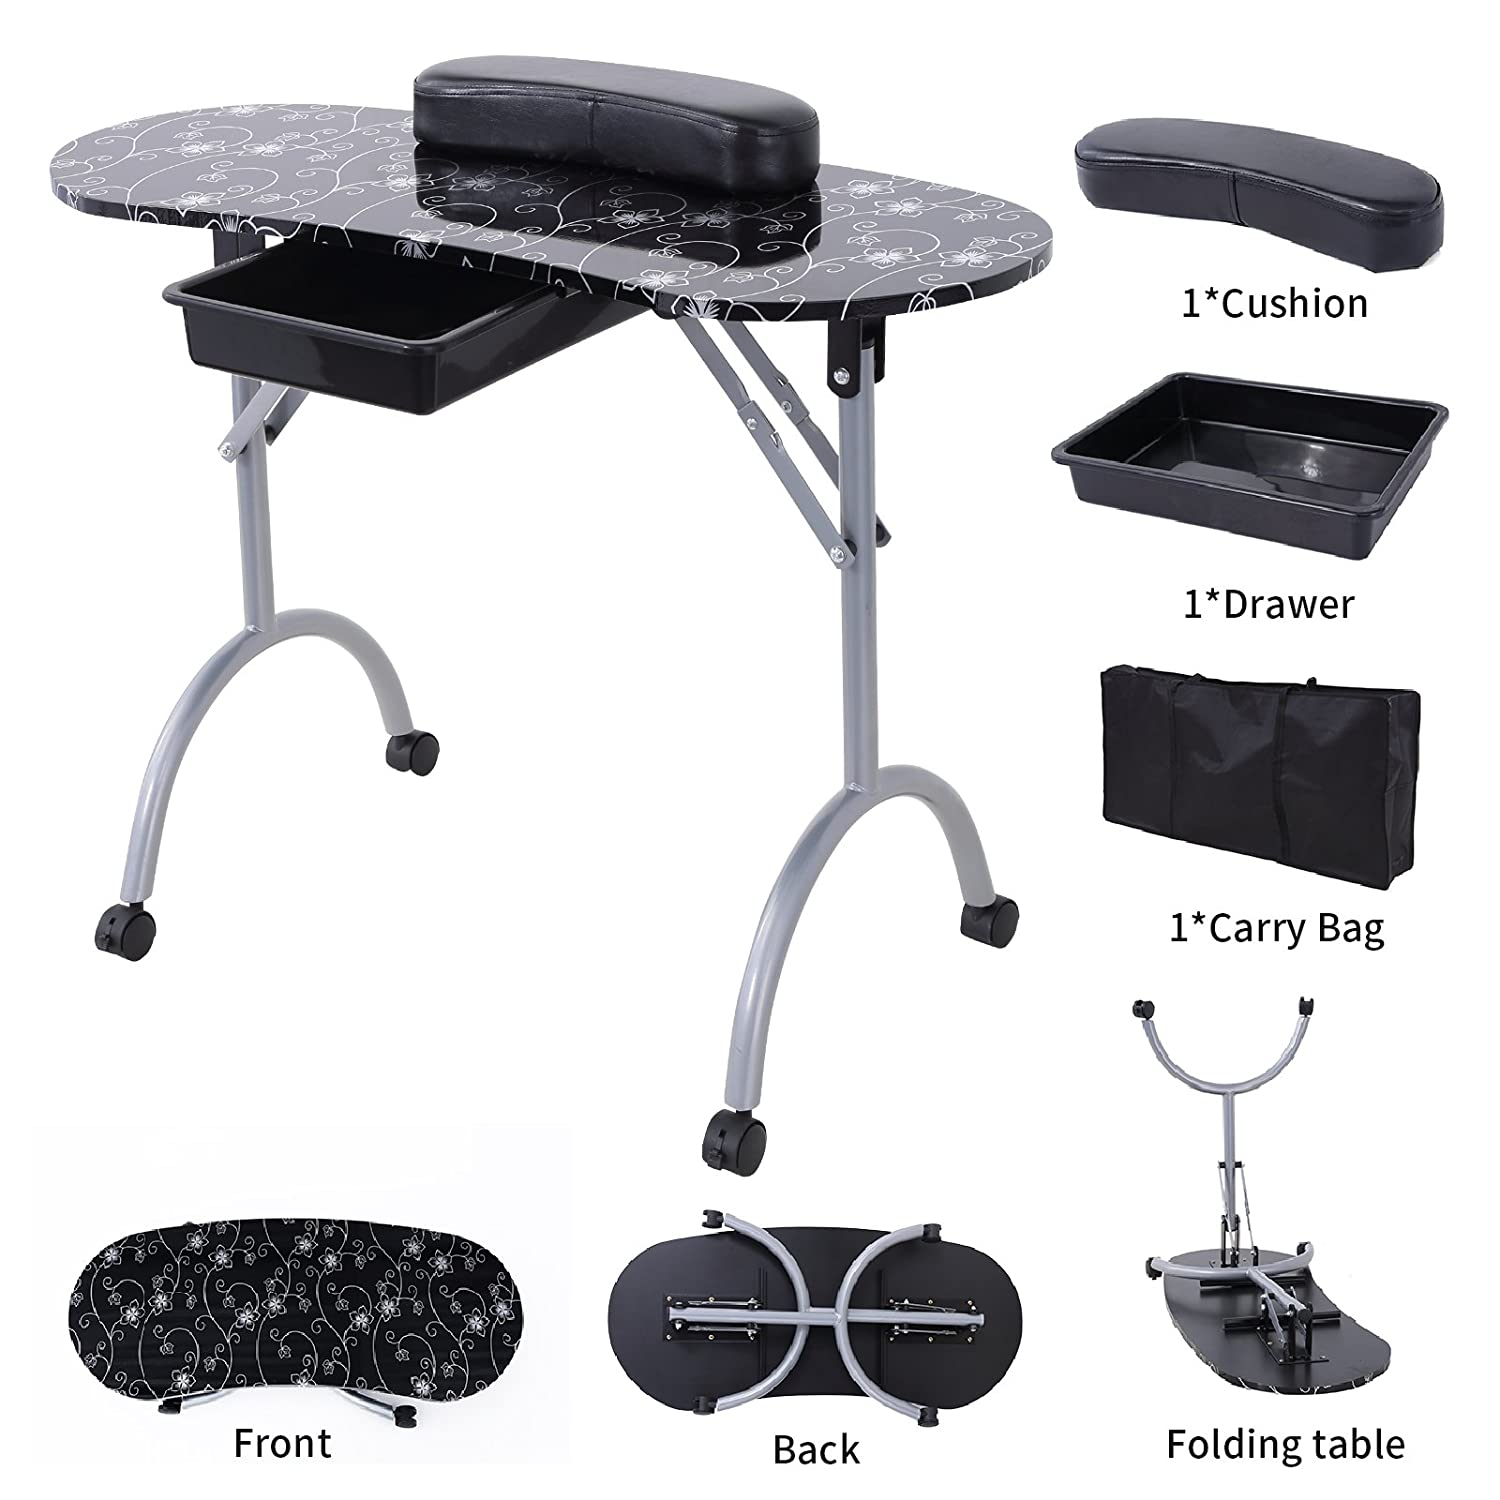 Amazon.com : Nails Table Station Murtisol Portable Manicure Table ...